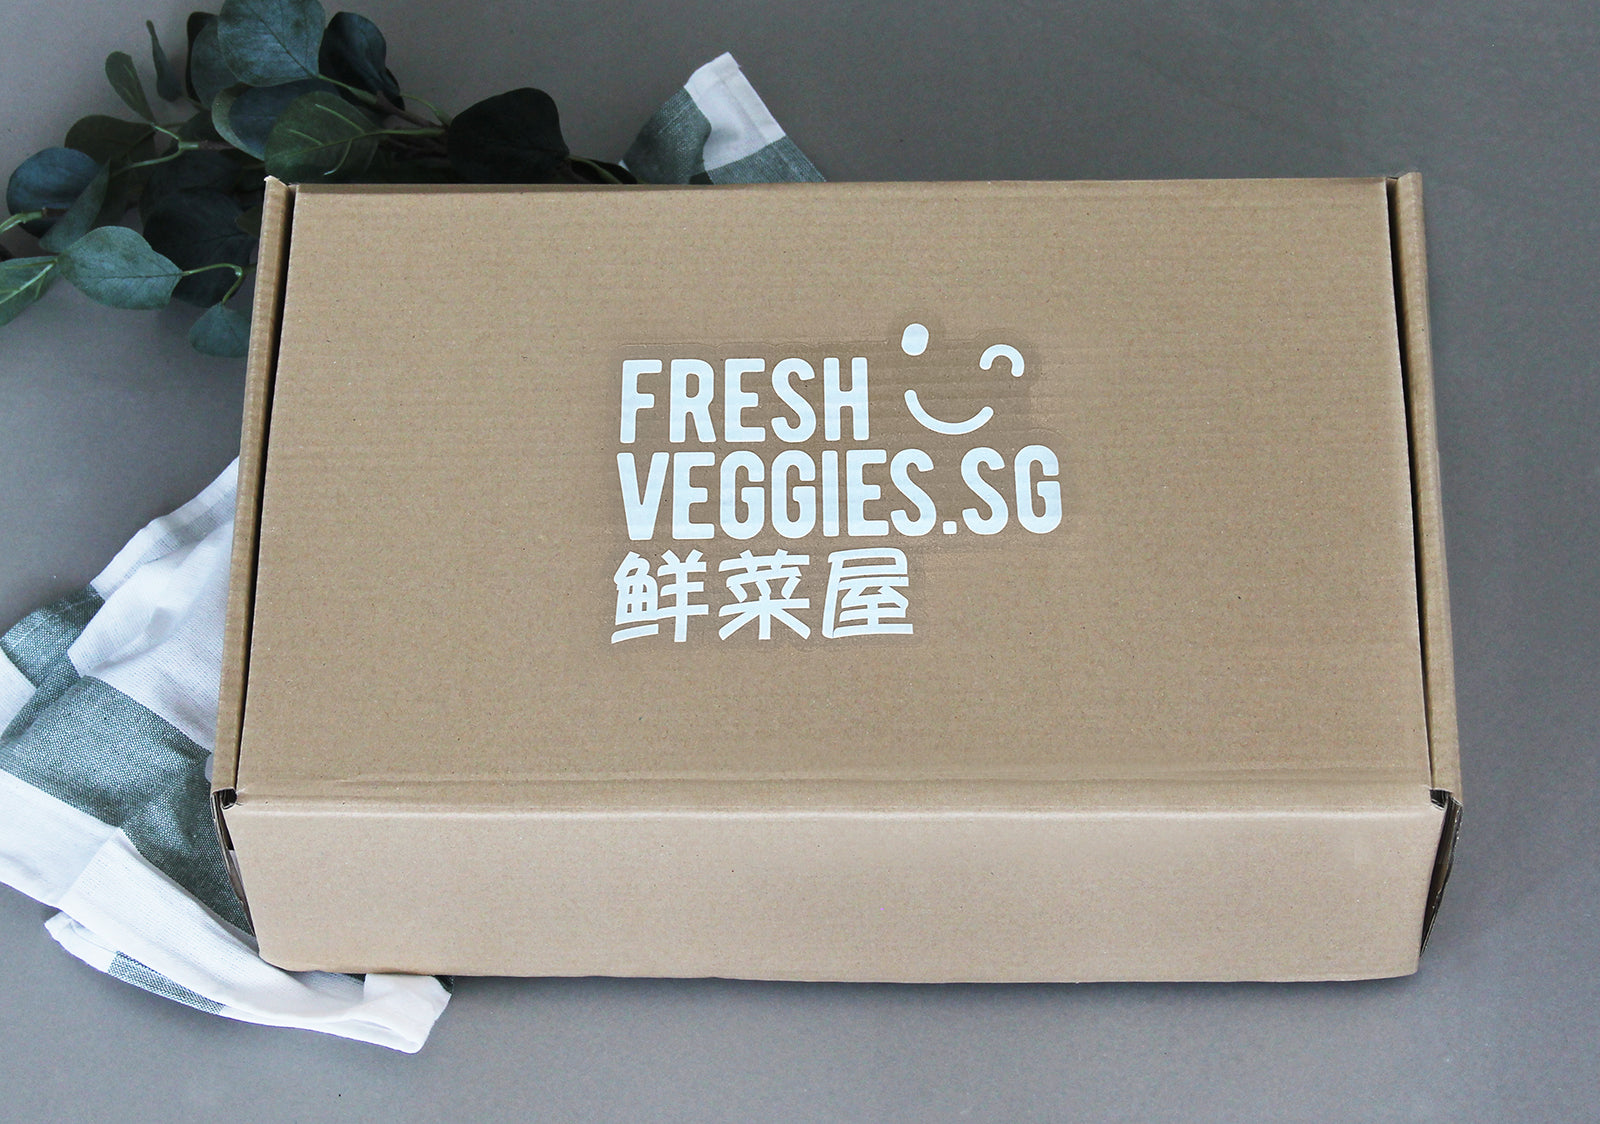 Fresh Veggies SG Fresh Vegetables Online Delivery in Singapore Greengrocer  - Recipes - Gift - Gift Box